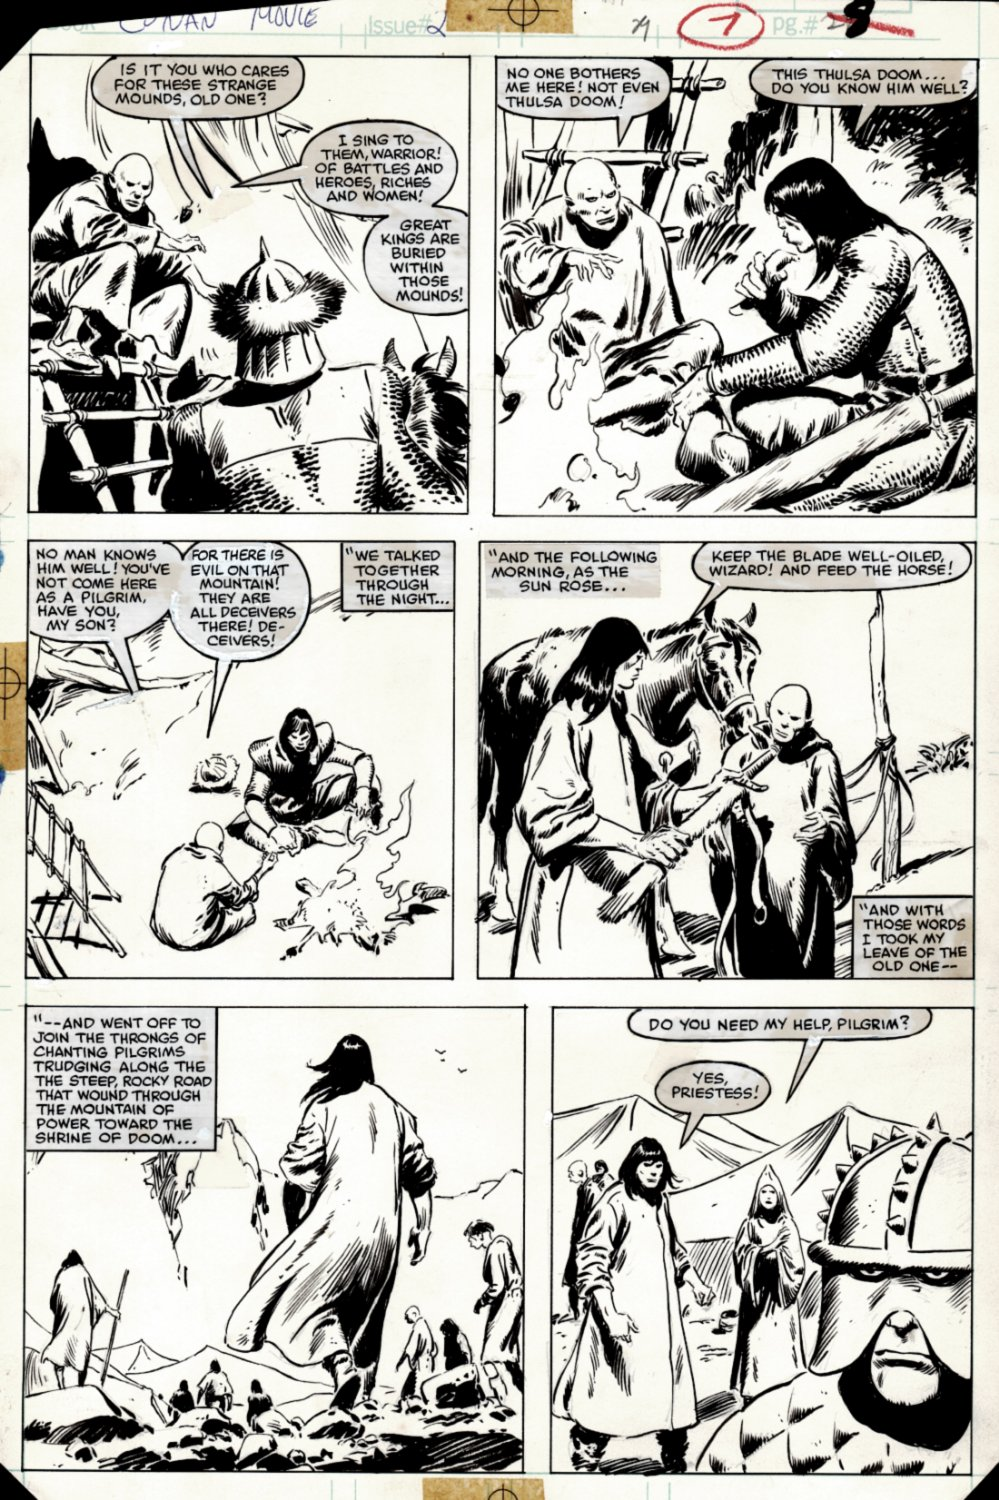 Conan Movie Special #2 p 29 (SOLD LIVE ON 'DUELING DEALERS OF COMIC ART' EPISODE #38 PODCAST ON 9-29-2021)